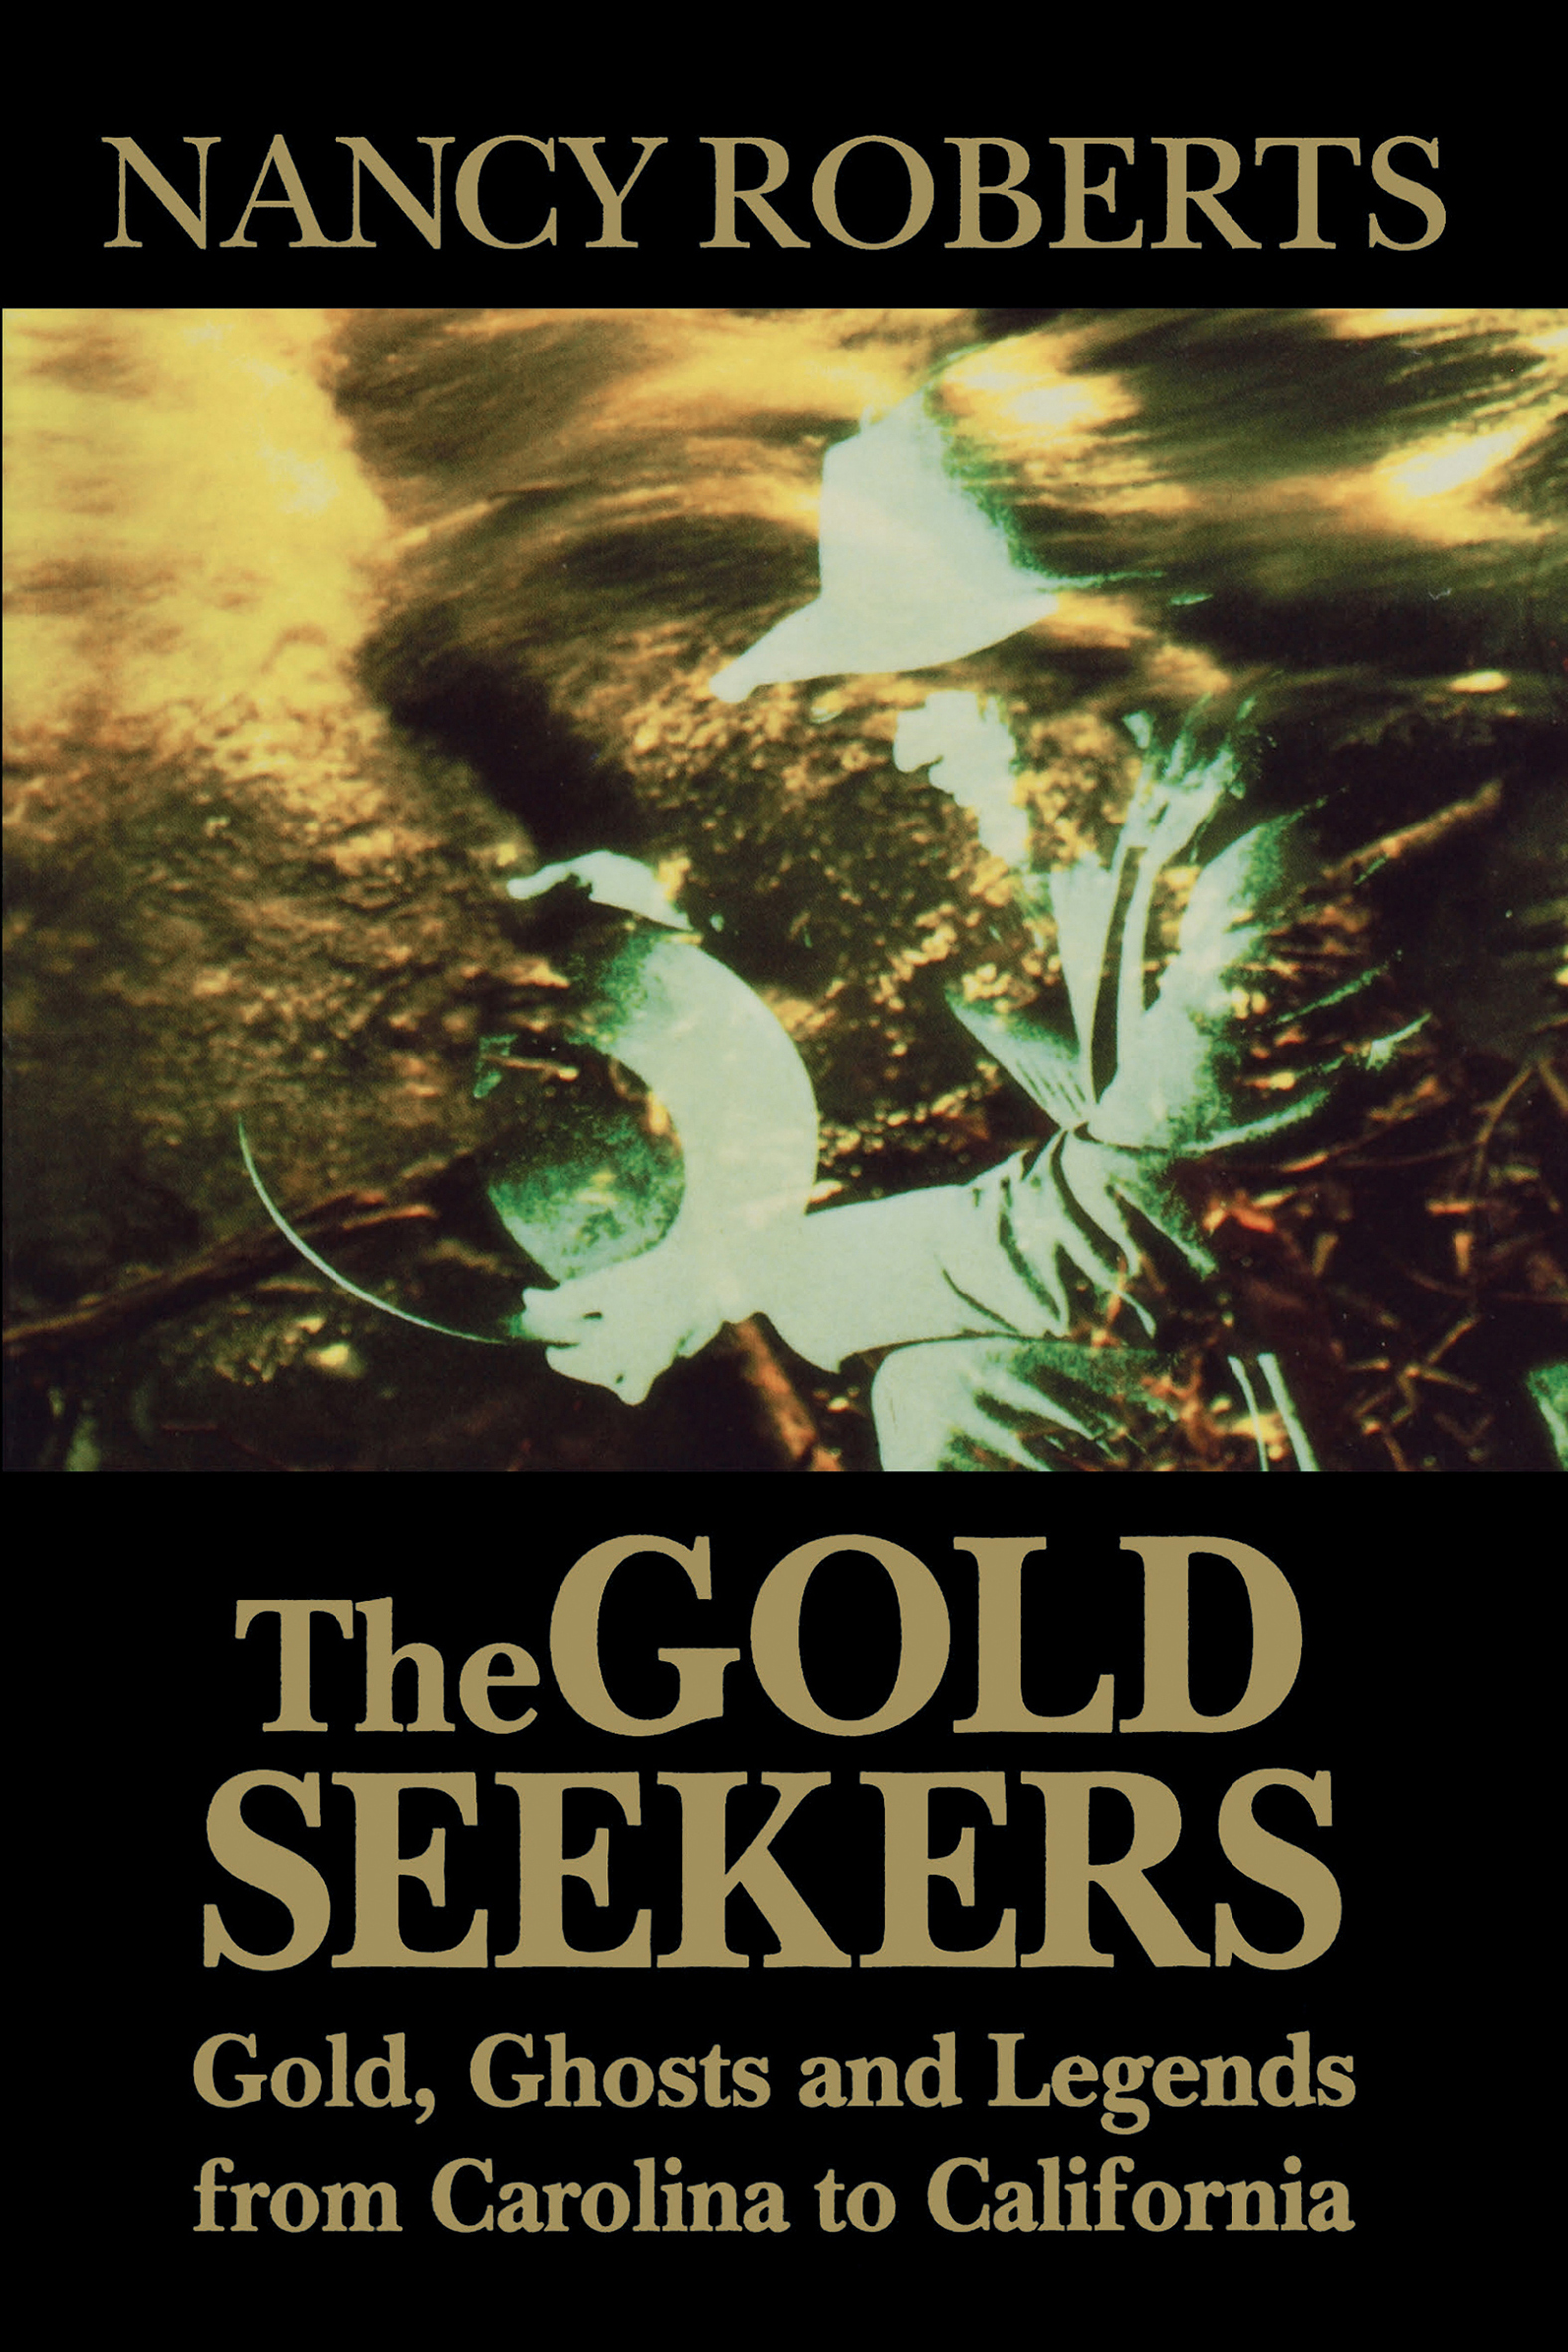 The Gold Seekers